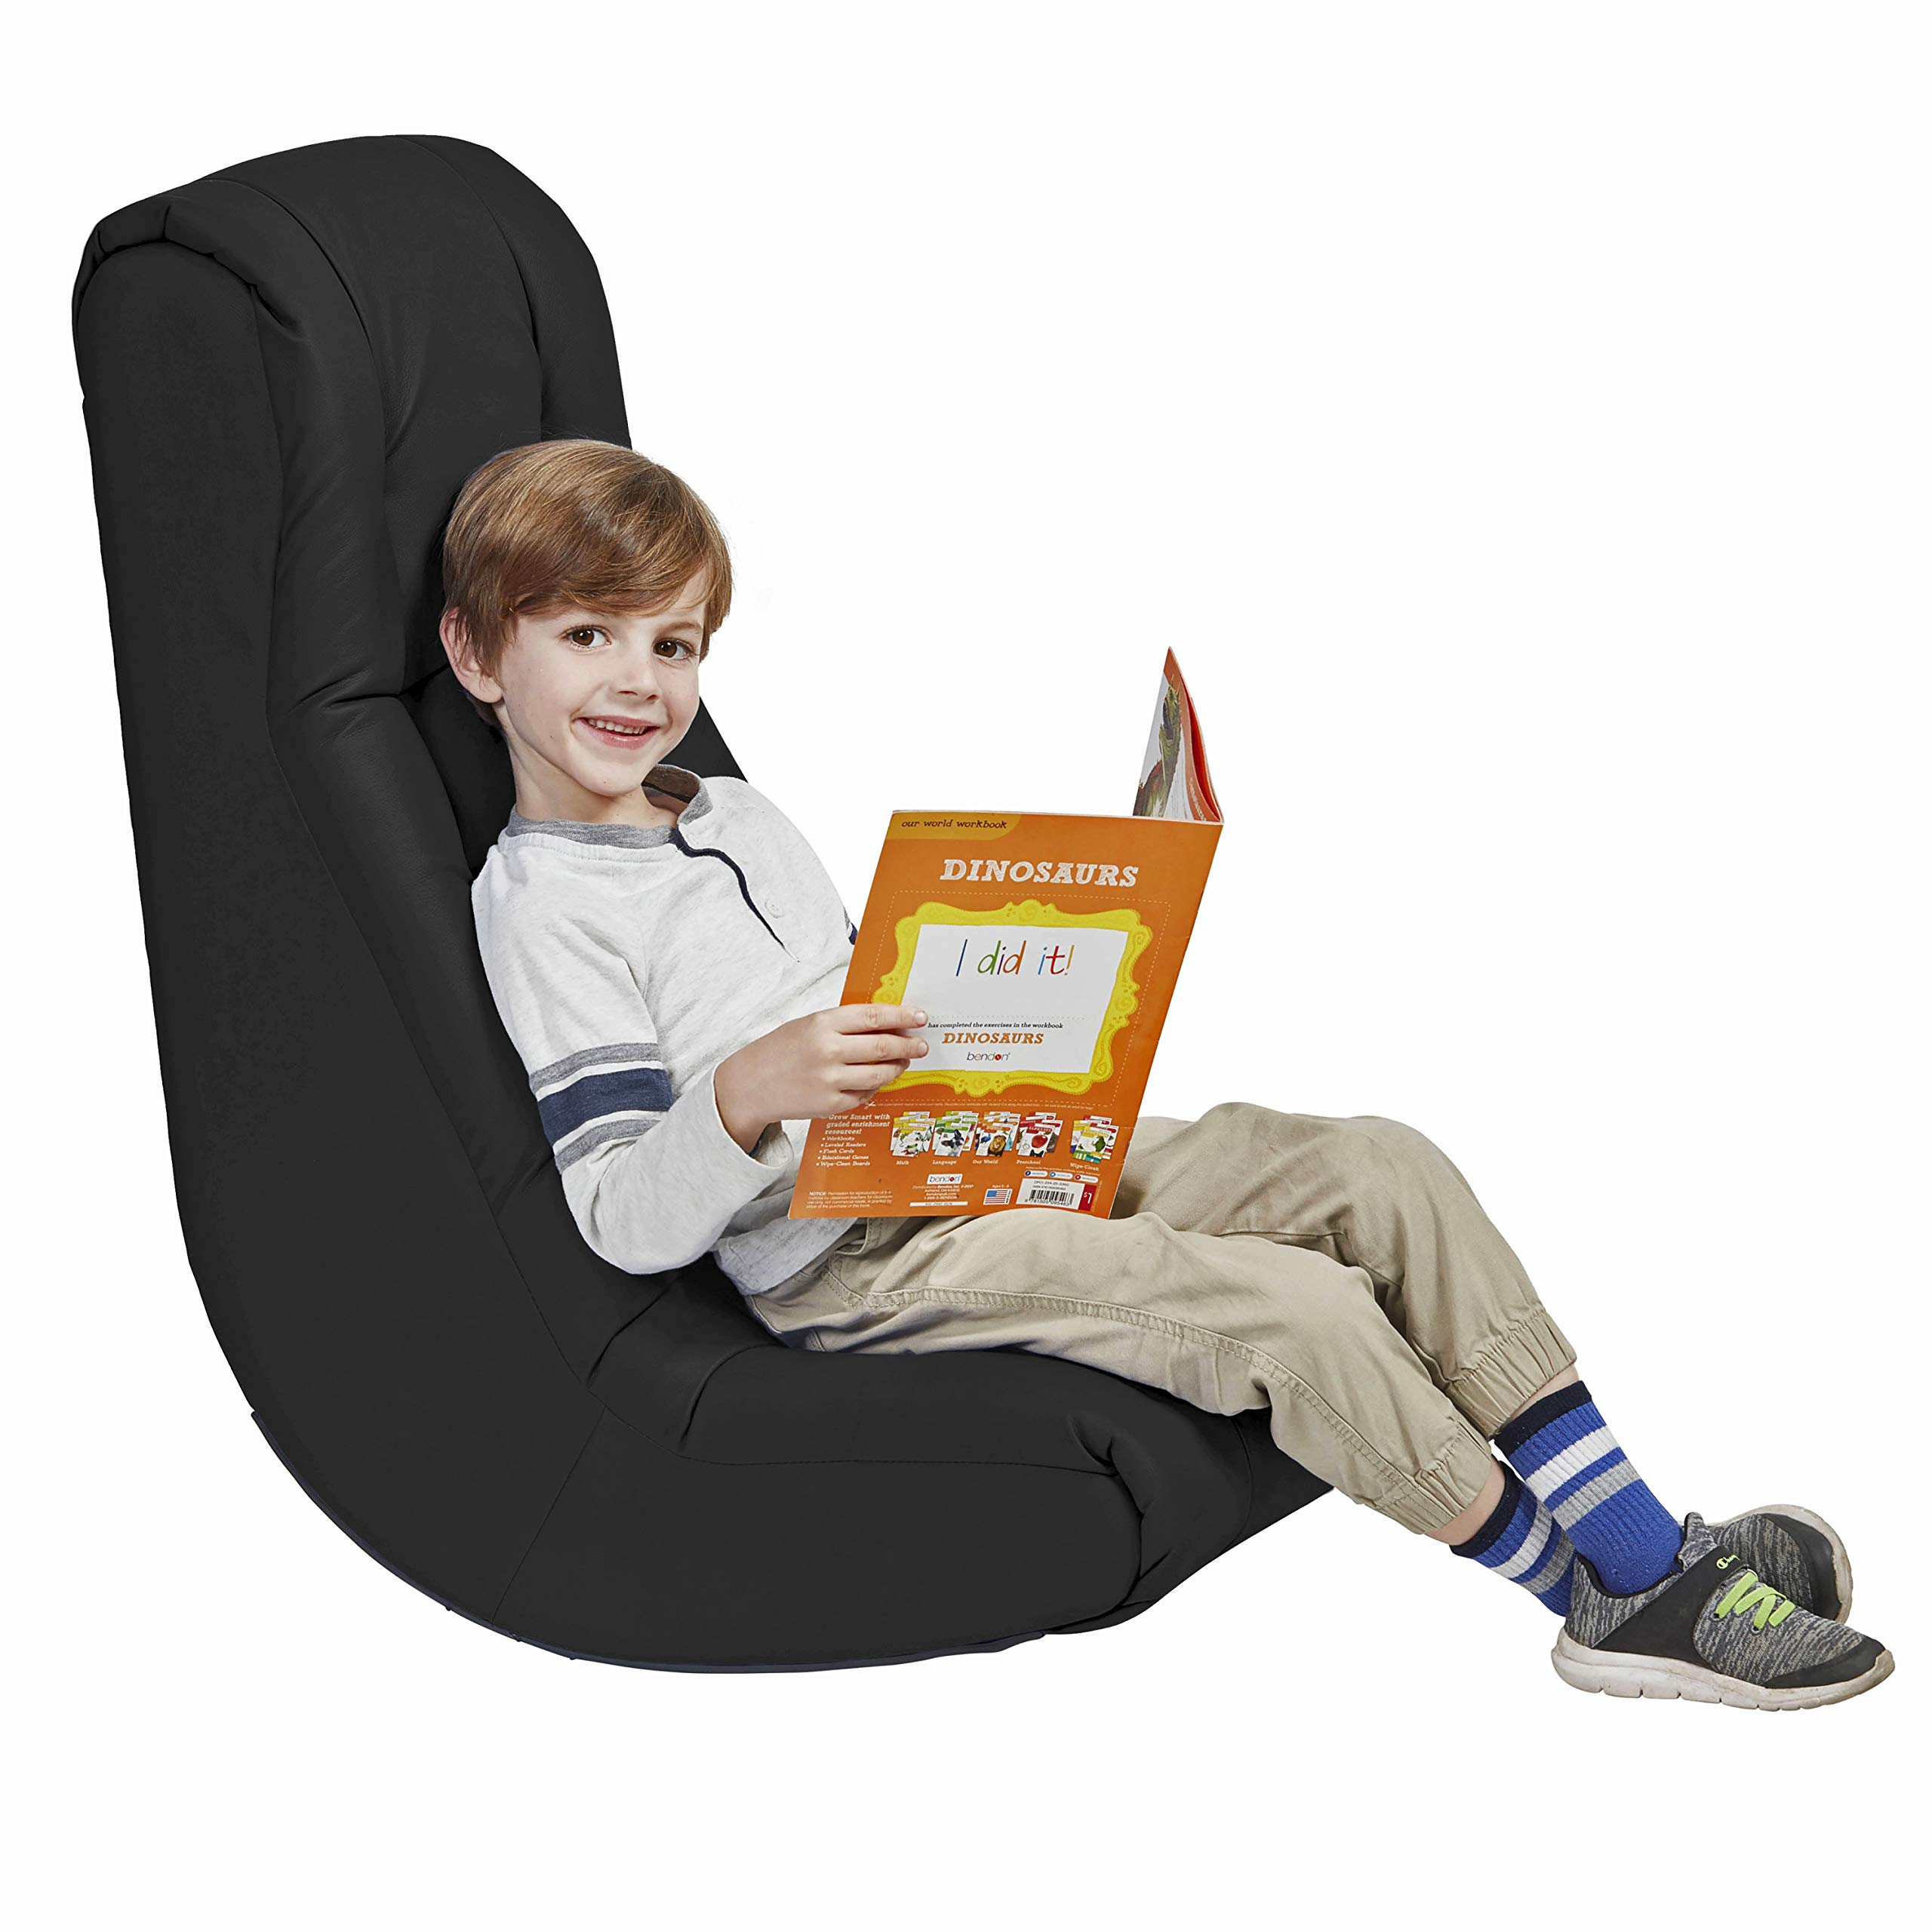 Soft Video Rocker - Cushioned Floor Chair for Kids, Teens and Adults - Great for Reading, Gaming, Meditating, TV - Black